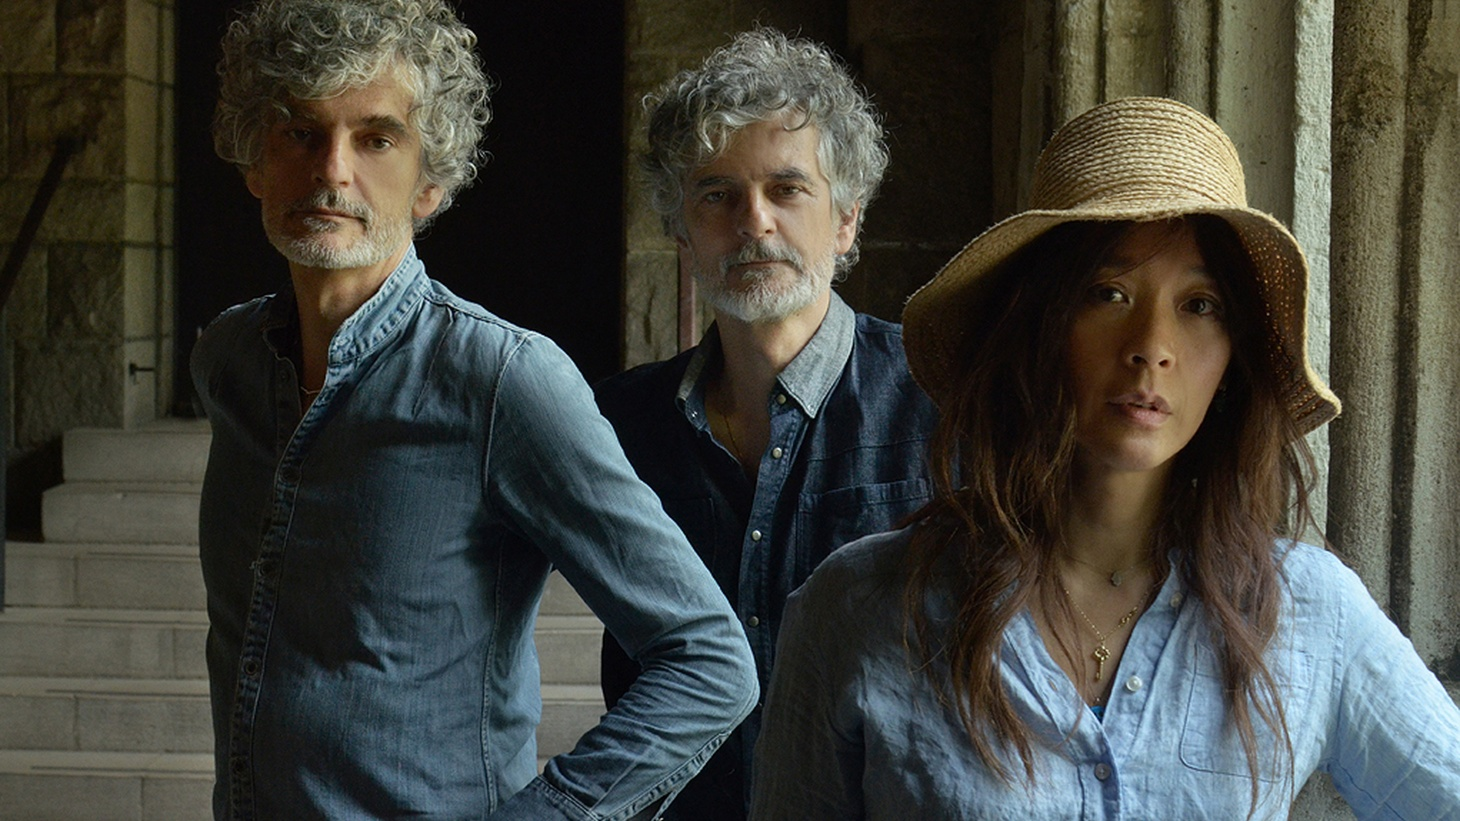 """Art rockers Blonde Redhead collaborate with minimalist composer and pianist Ludovico Einaudi, who guides lavish orchestration into intense, yet gentle sonic waves on """"Where Your Mind Wants To Go."""""""